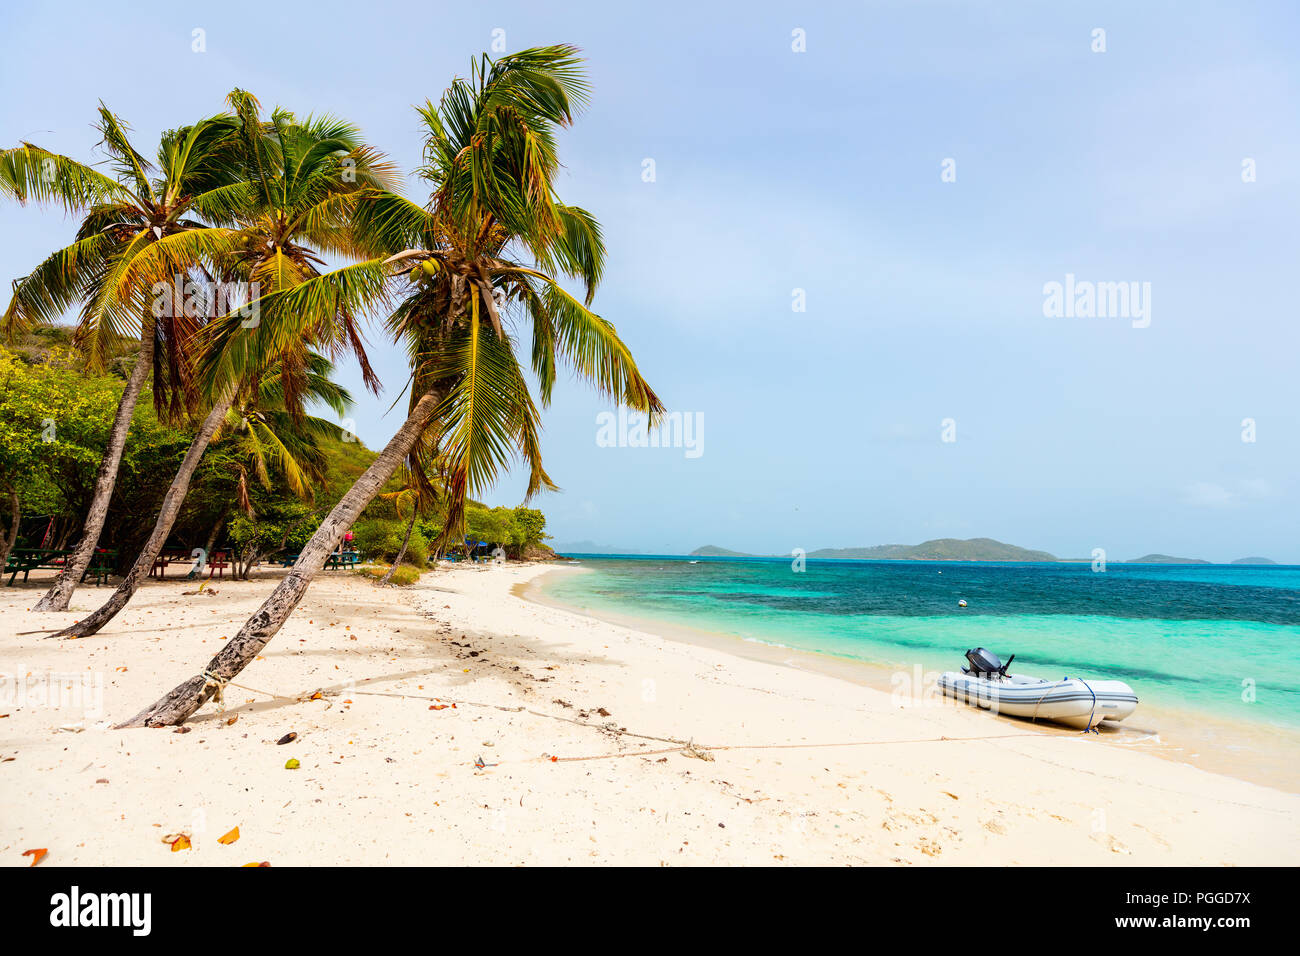 Idyllic tropical beach with white sand, palm trees and turquoise Caribbean sea water on exotic island at Tobago cays in St Vincent and the Grenadines - Stock Image